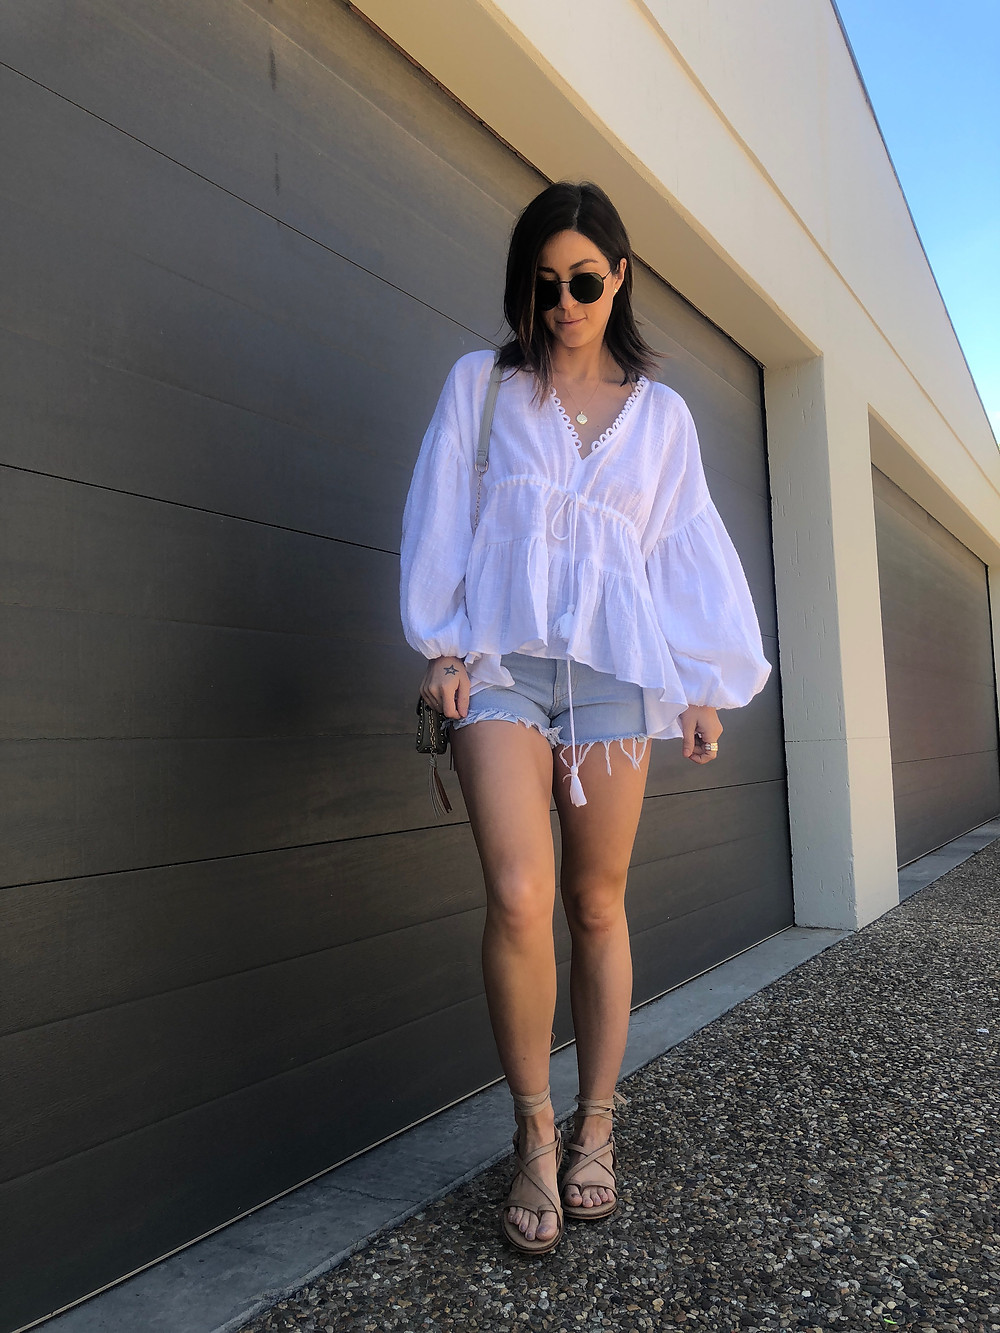 The Style Side Canberra Fashion Stylist